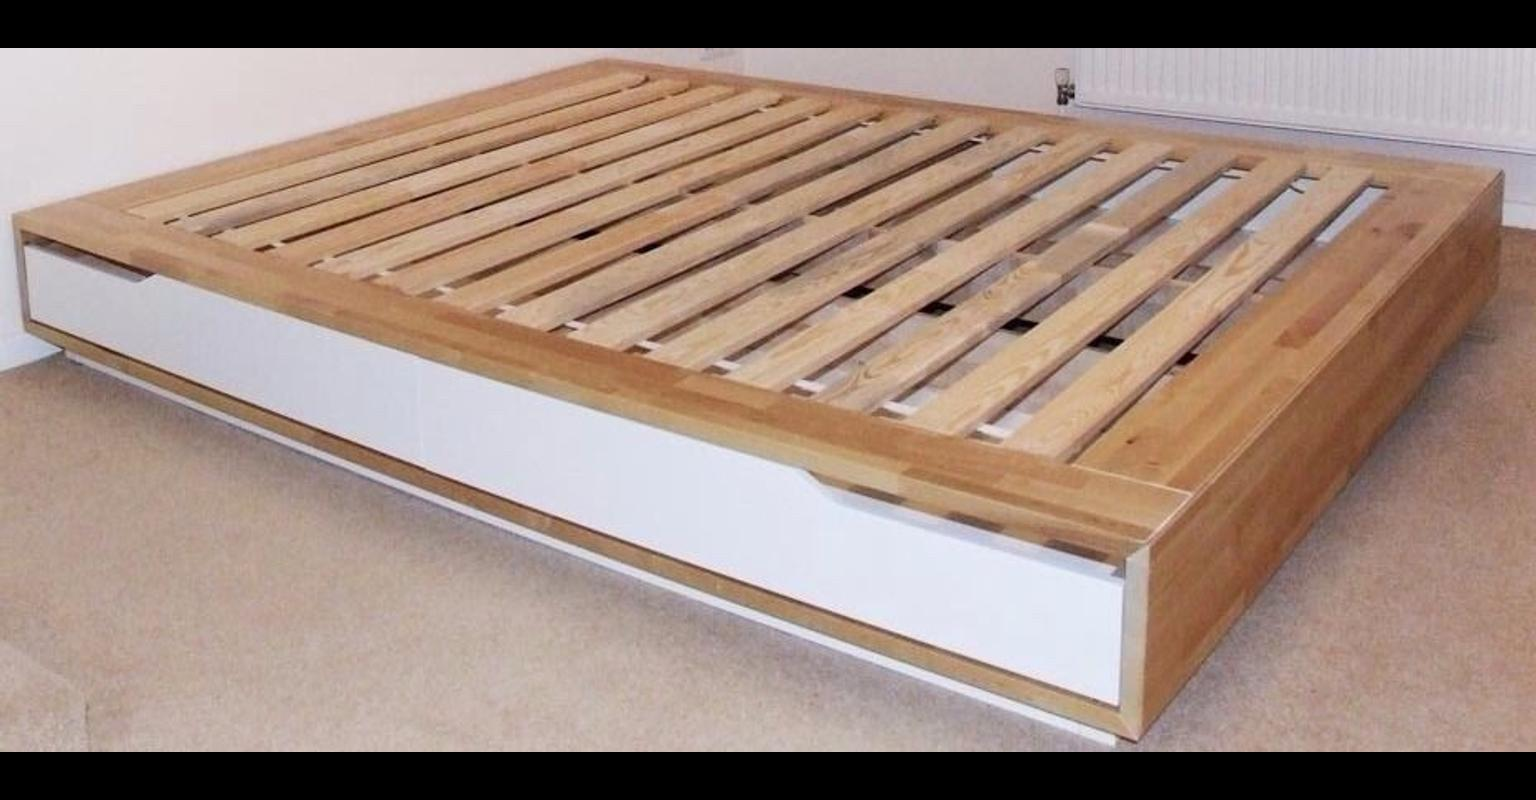 Ikea Mandal Frame Ikea King Size Mandal Bed Frame With Storage